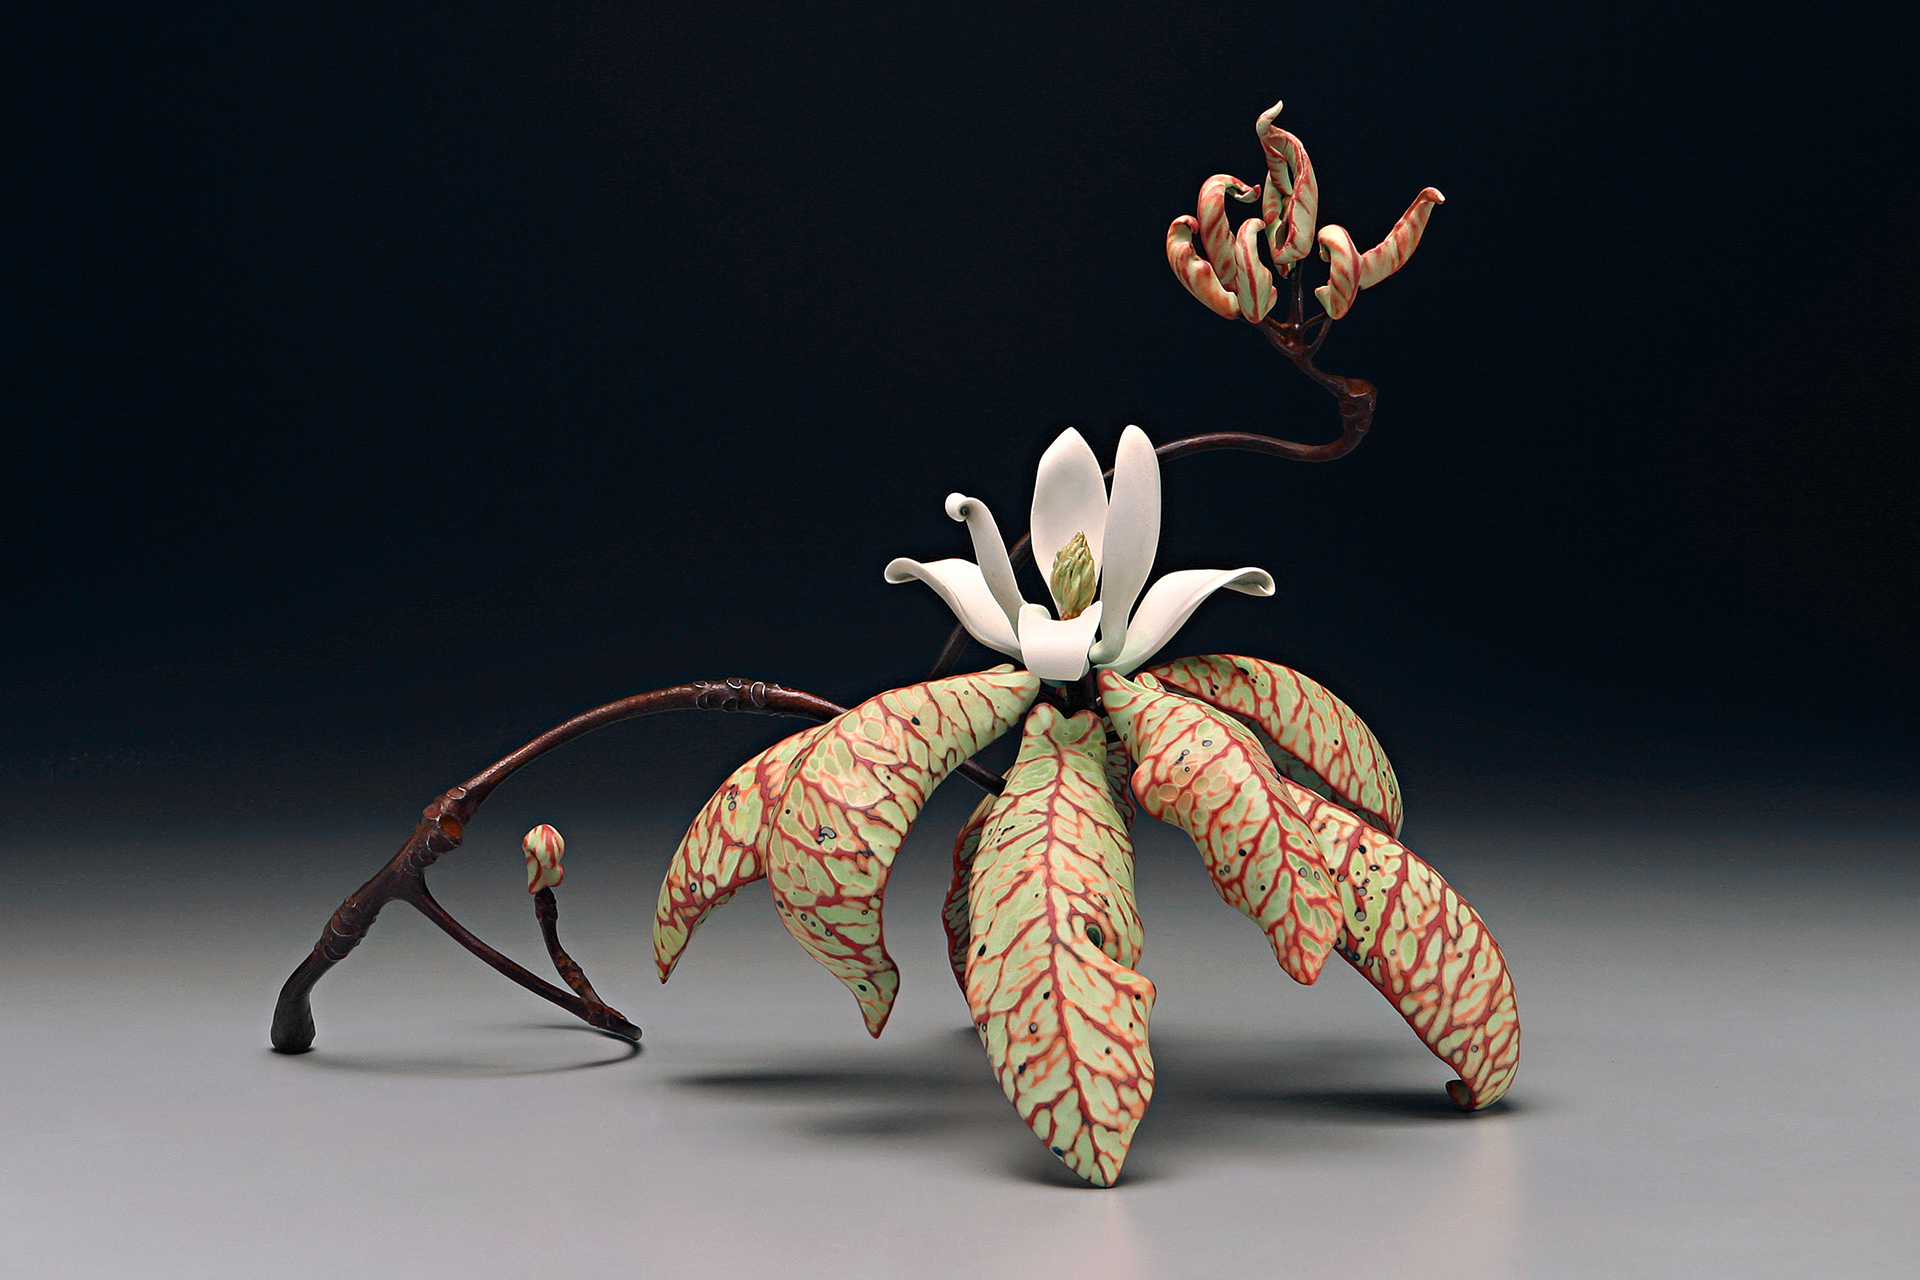 Undressed Magnolia, 16h x 22w x 16d, Silica bronze and porcelain with abraded glaze 1920.jpg